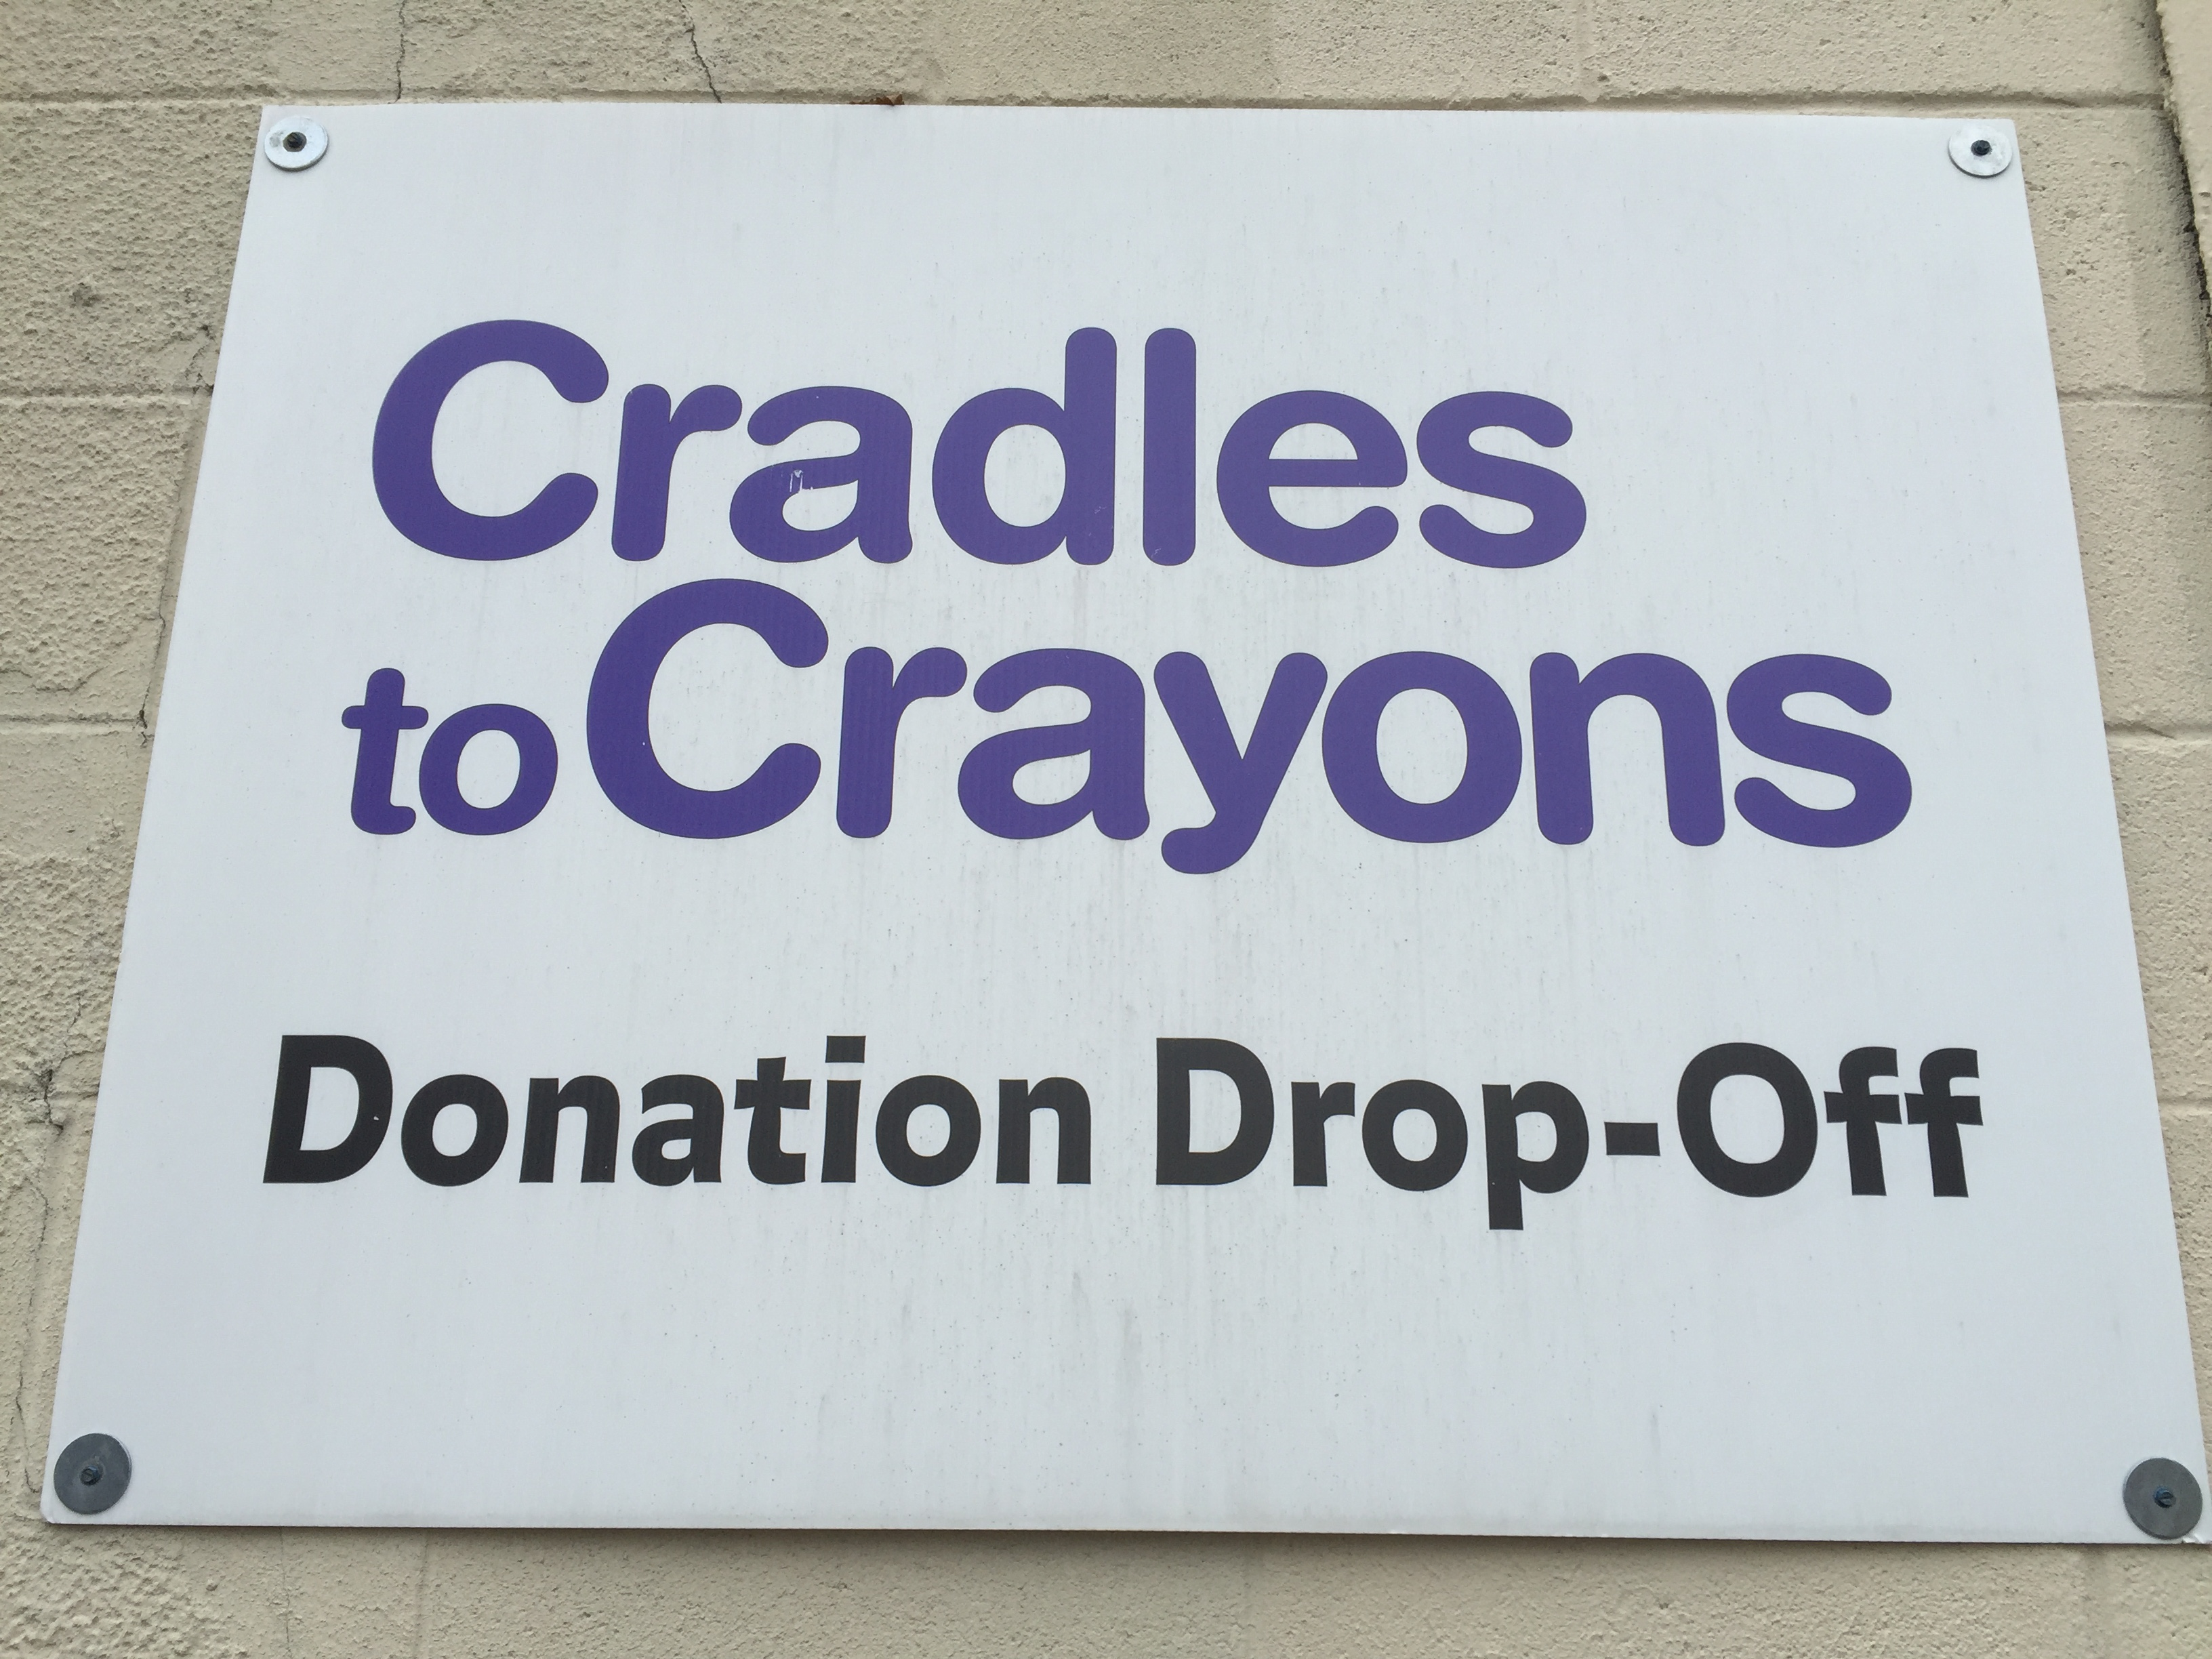 IMG 1464 - Locks Law Firm makes a Difference with Donation to Cradles to Crayons